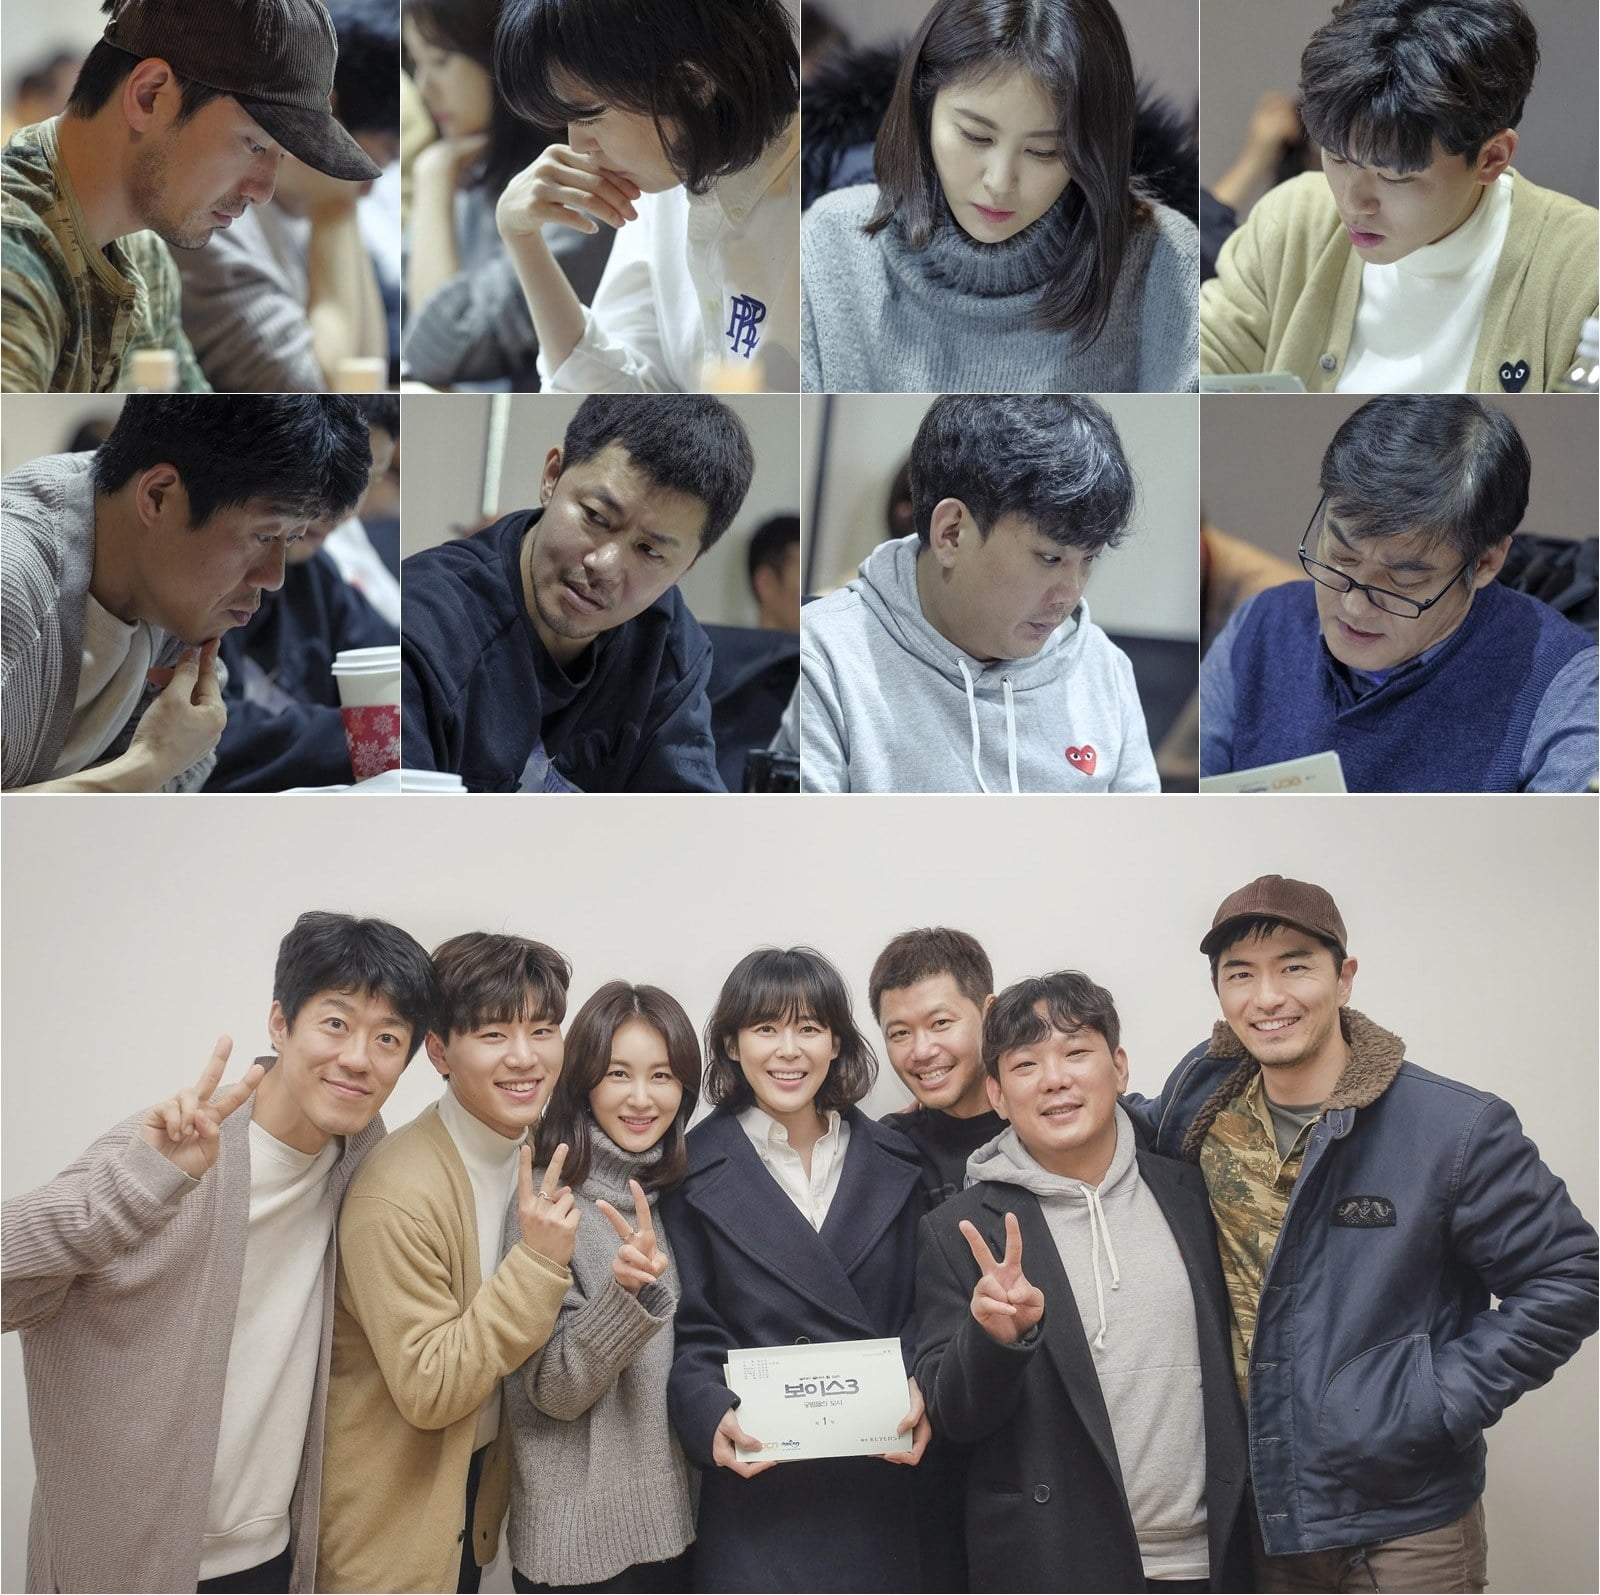 """Lee Ha Na, Lee Jin Wook, And More Attend Script Reading For 3rd Season Of OCN's """"Voice"""""""